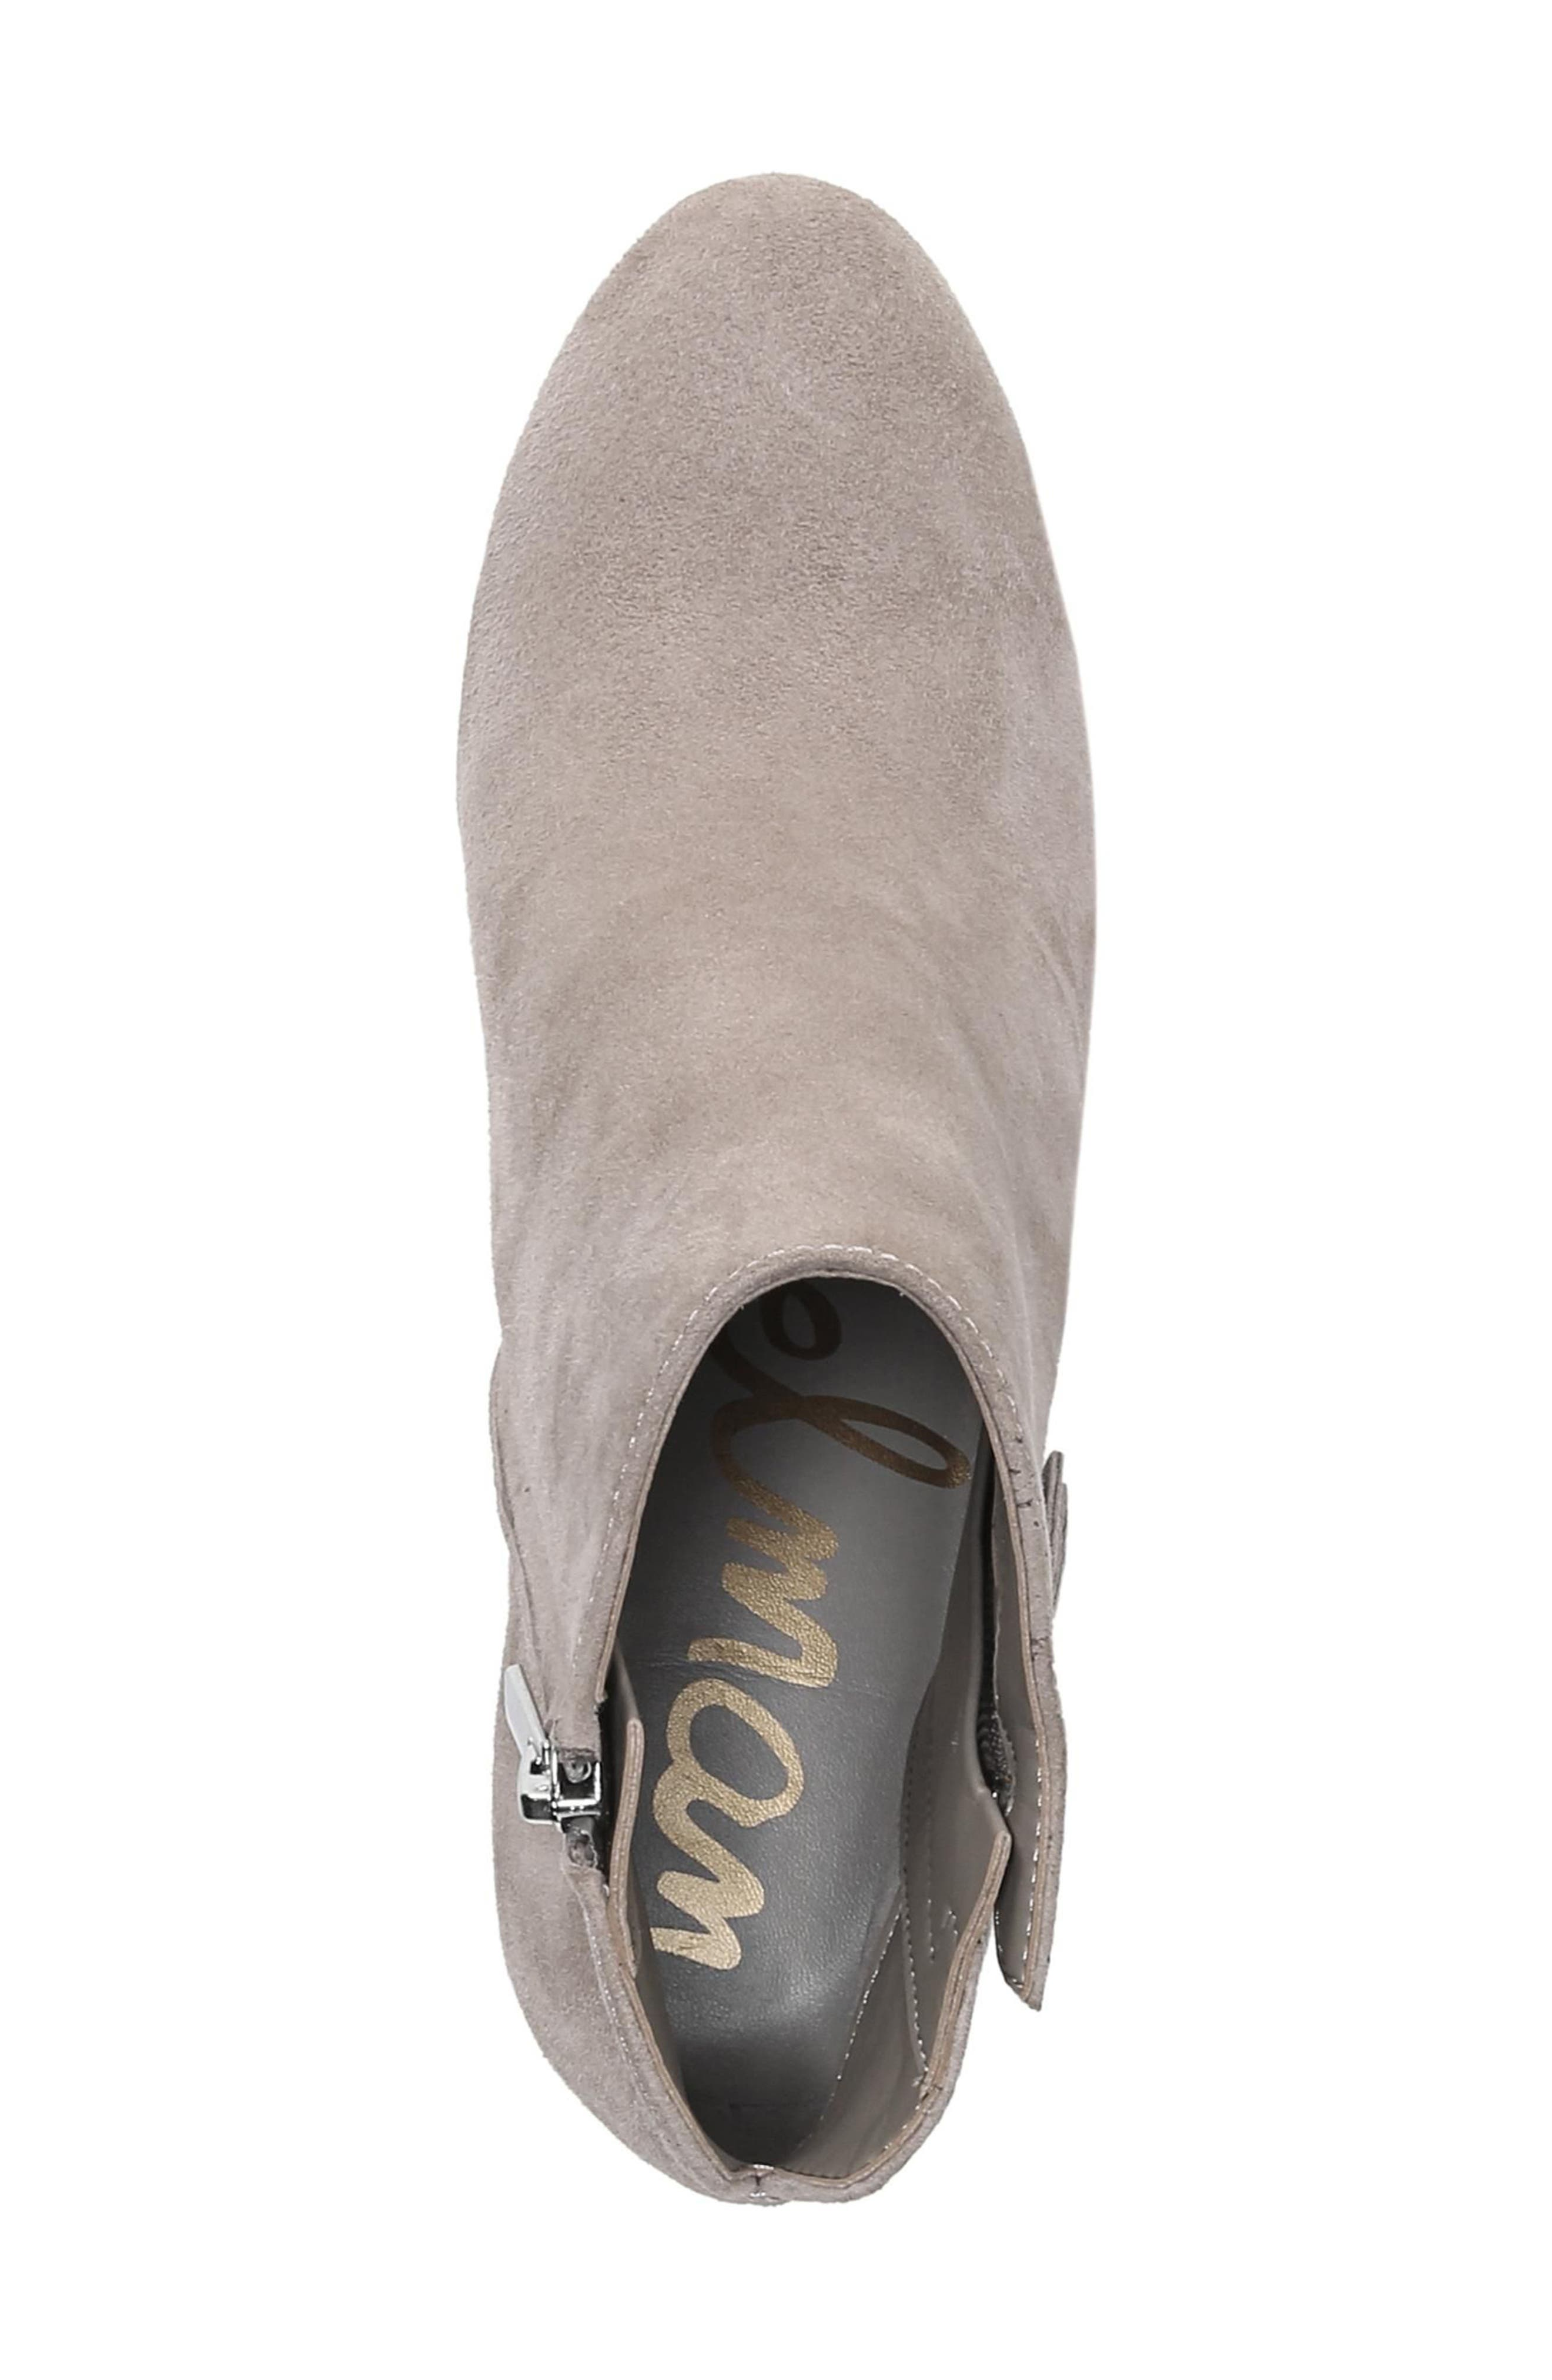 Sadee Angle Zip Bootie,                             Alternate thumbnail 5, color,                             NEW PUTTY SUEDE